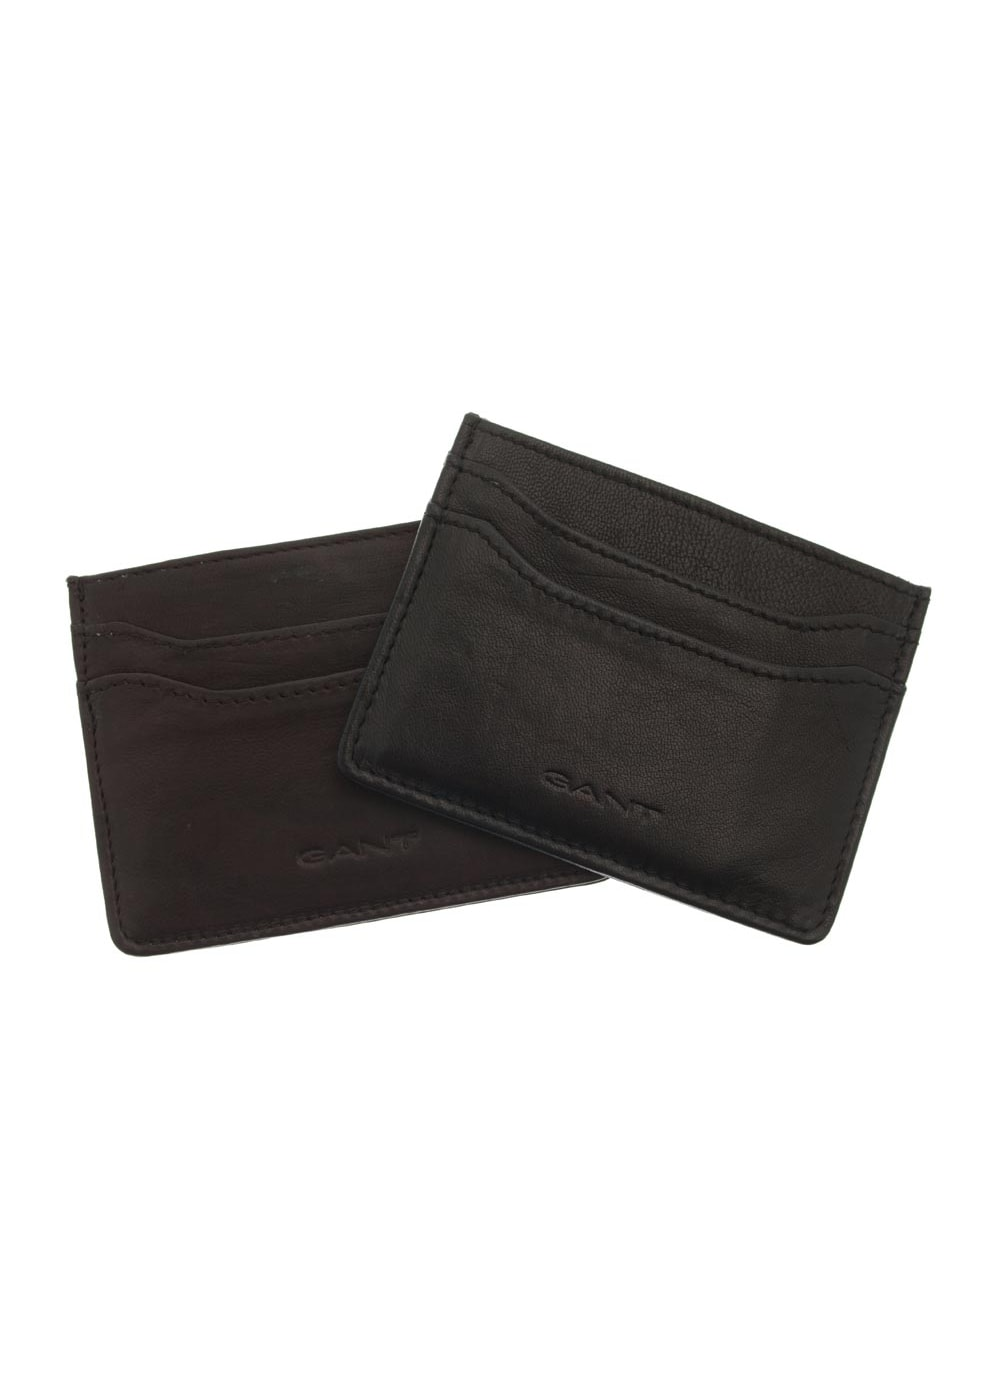 b874269e59 Home · Gant Mens · Gant Accessories · Gant Wallets; Leather Cardholder. Leather  Cardholder. Tap image to zoom. Leather Cardholder